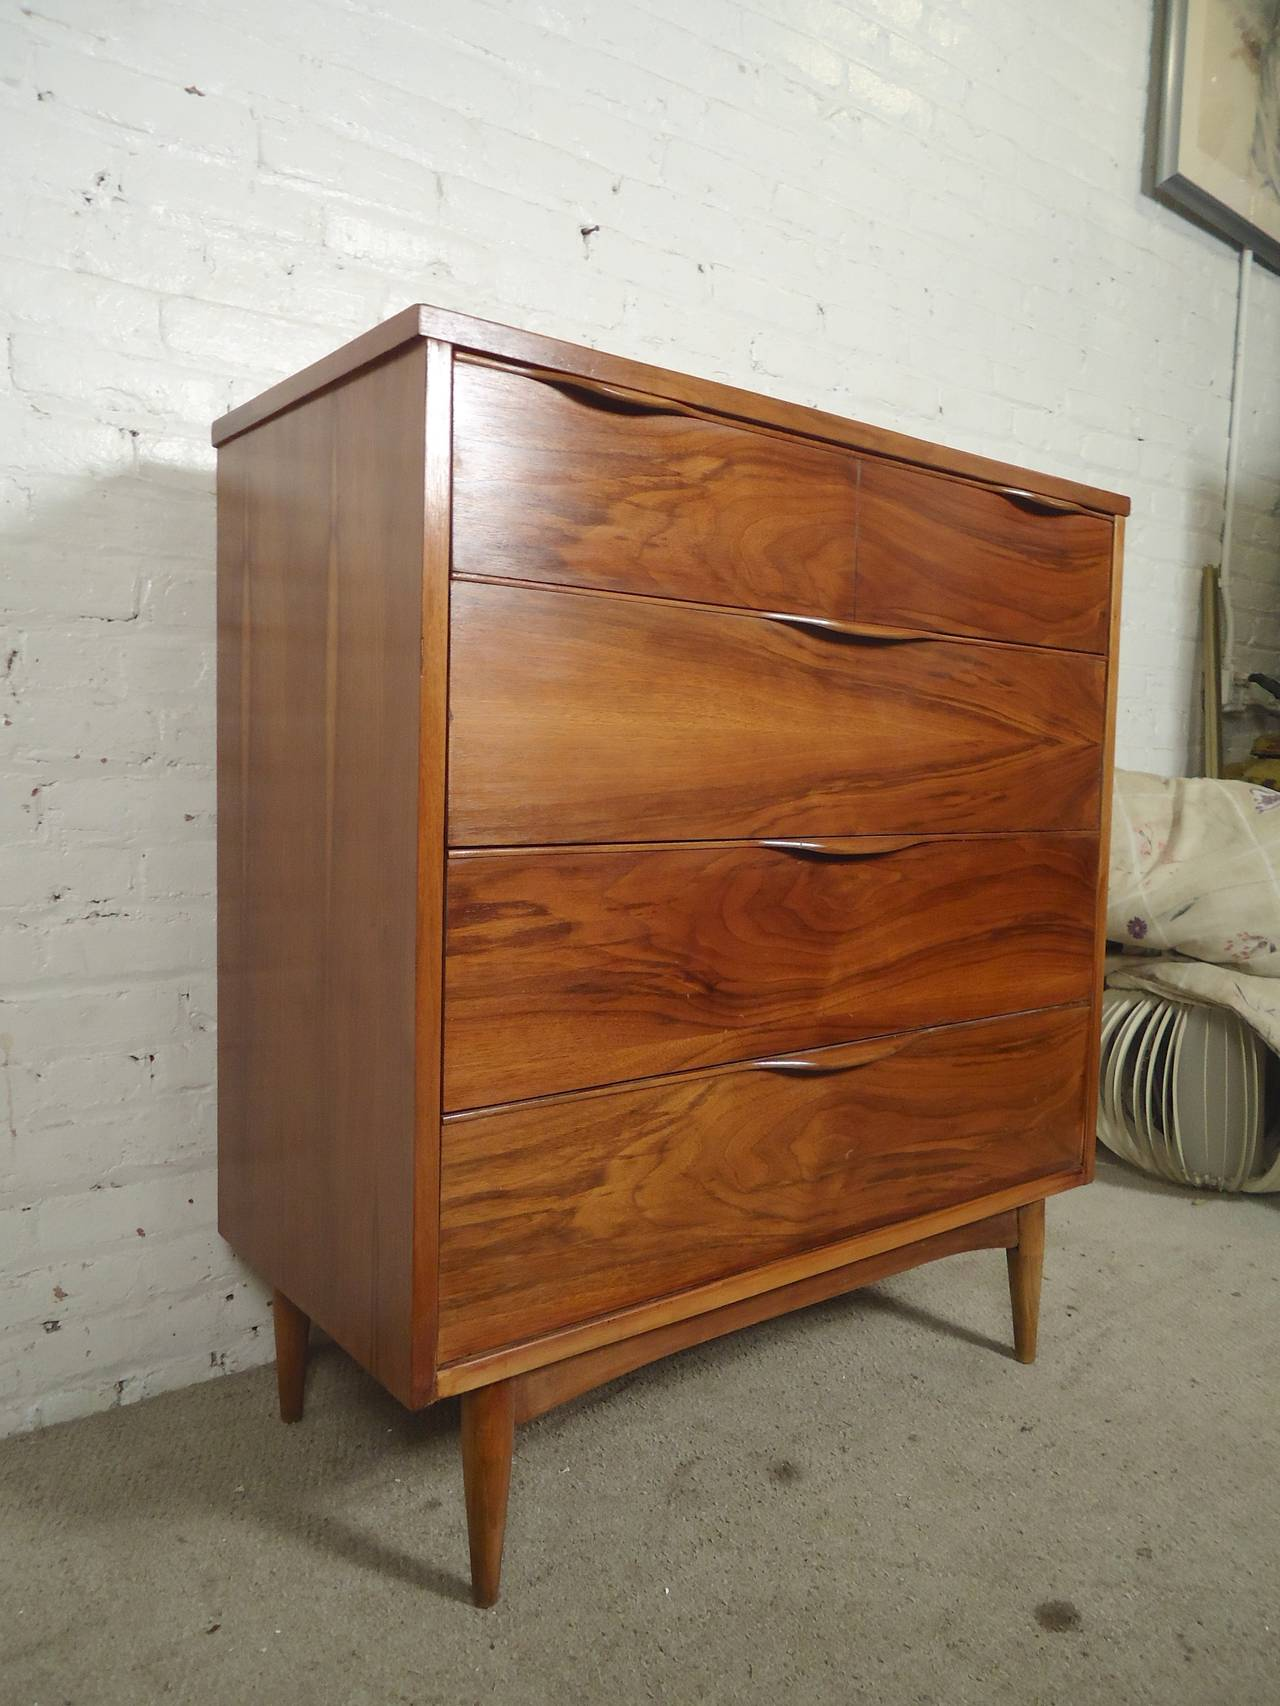 Unusual American Dresser With Curved Handles And Tapered Legs Four Wide Drawers Gorgeous Walnut